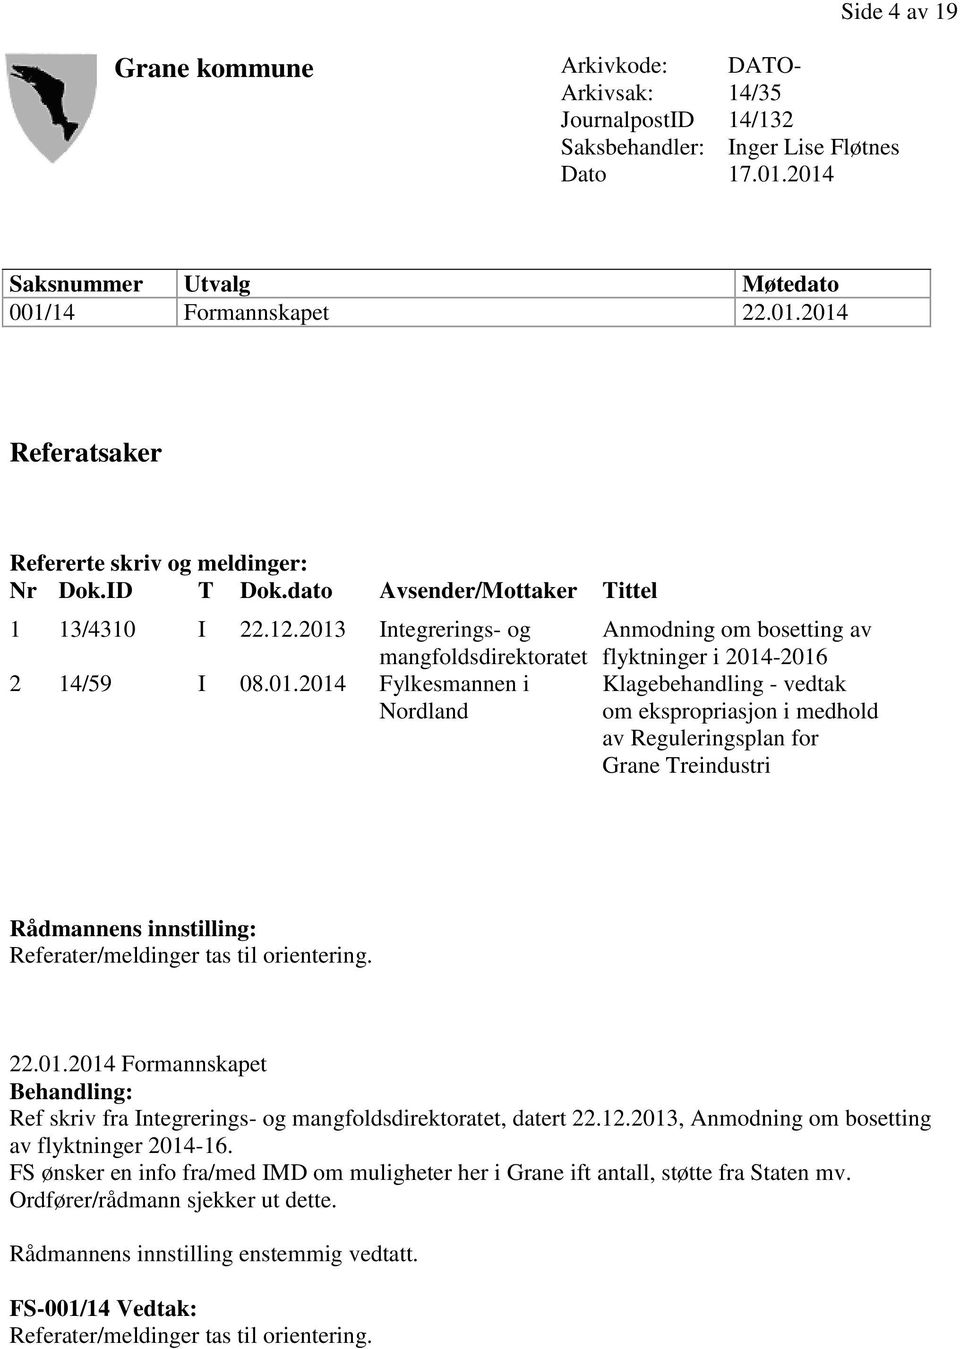 Integrerings- og mangfoldsdirektoratet 2 14/59 I 08.01.